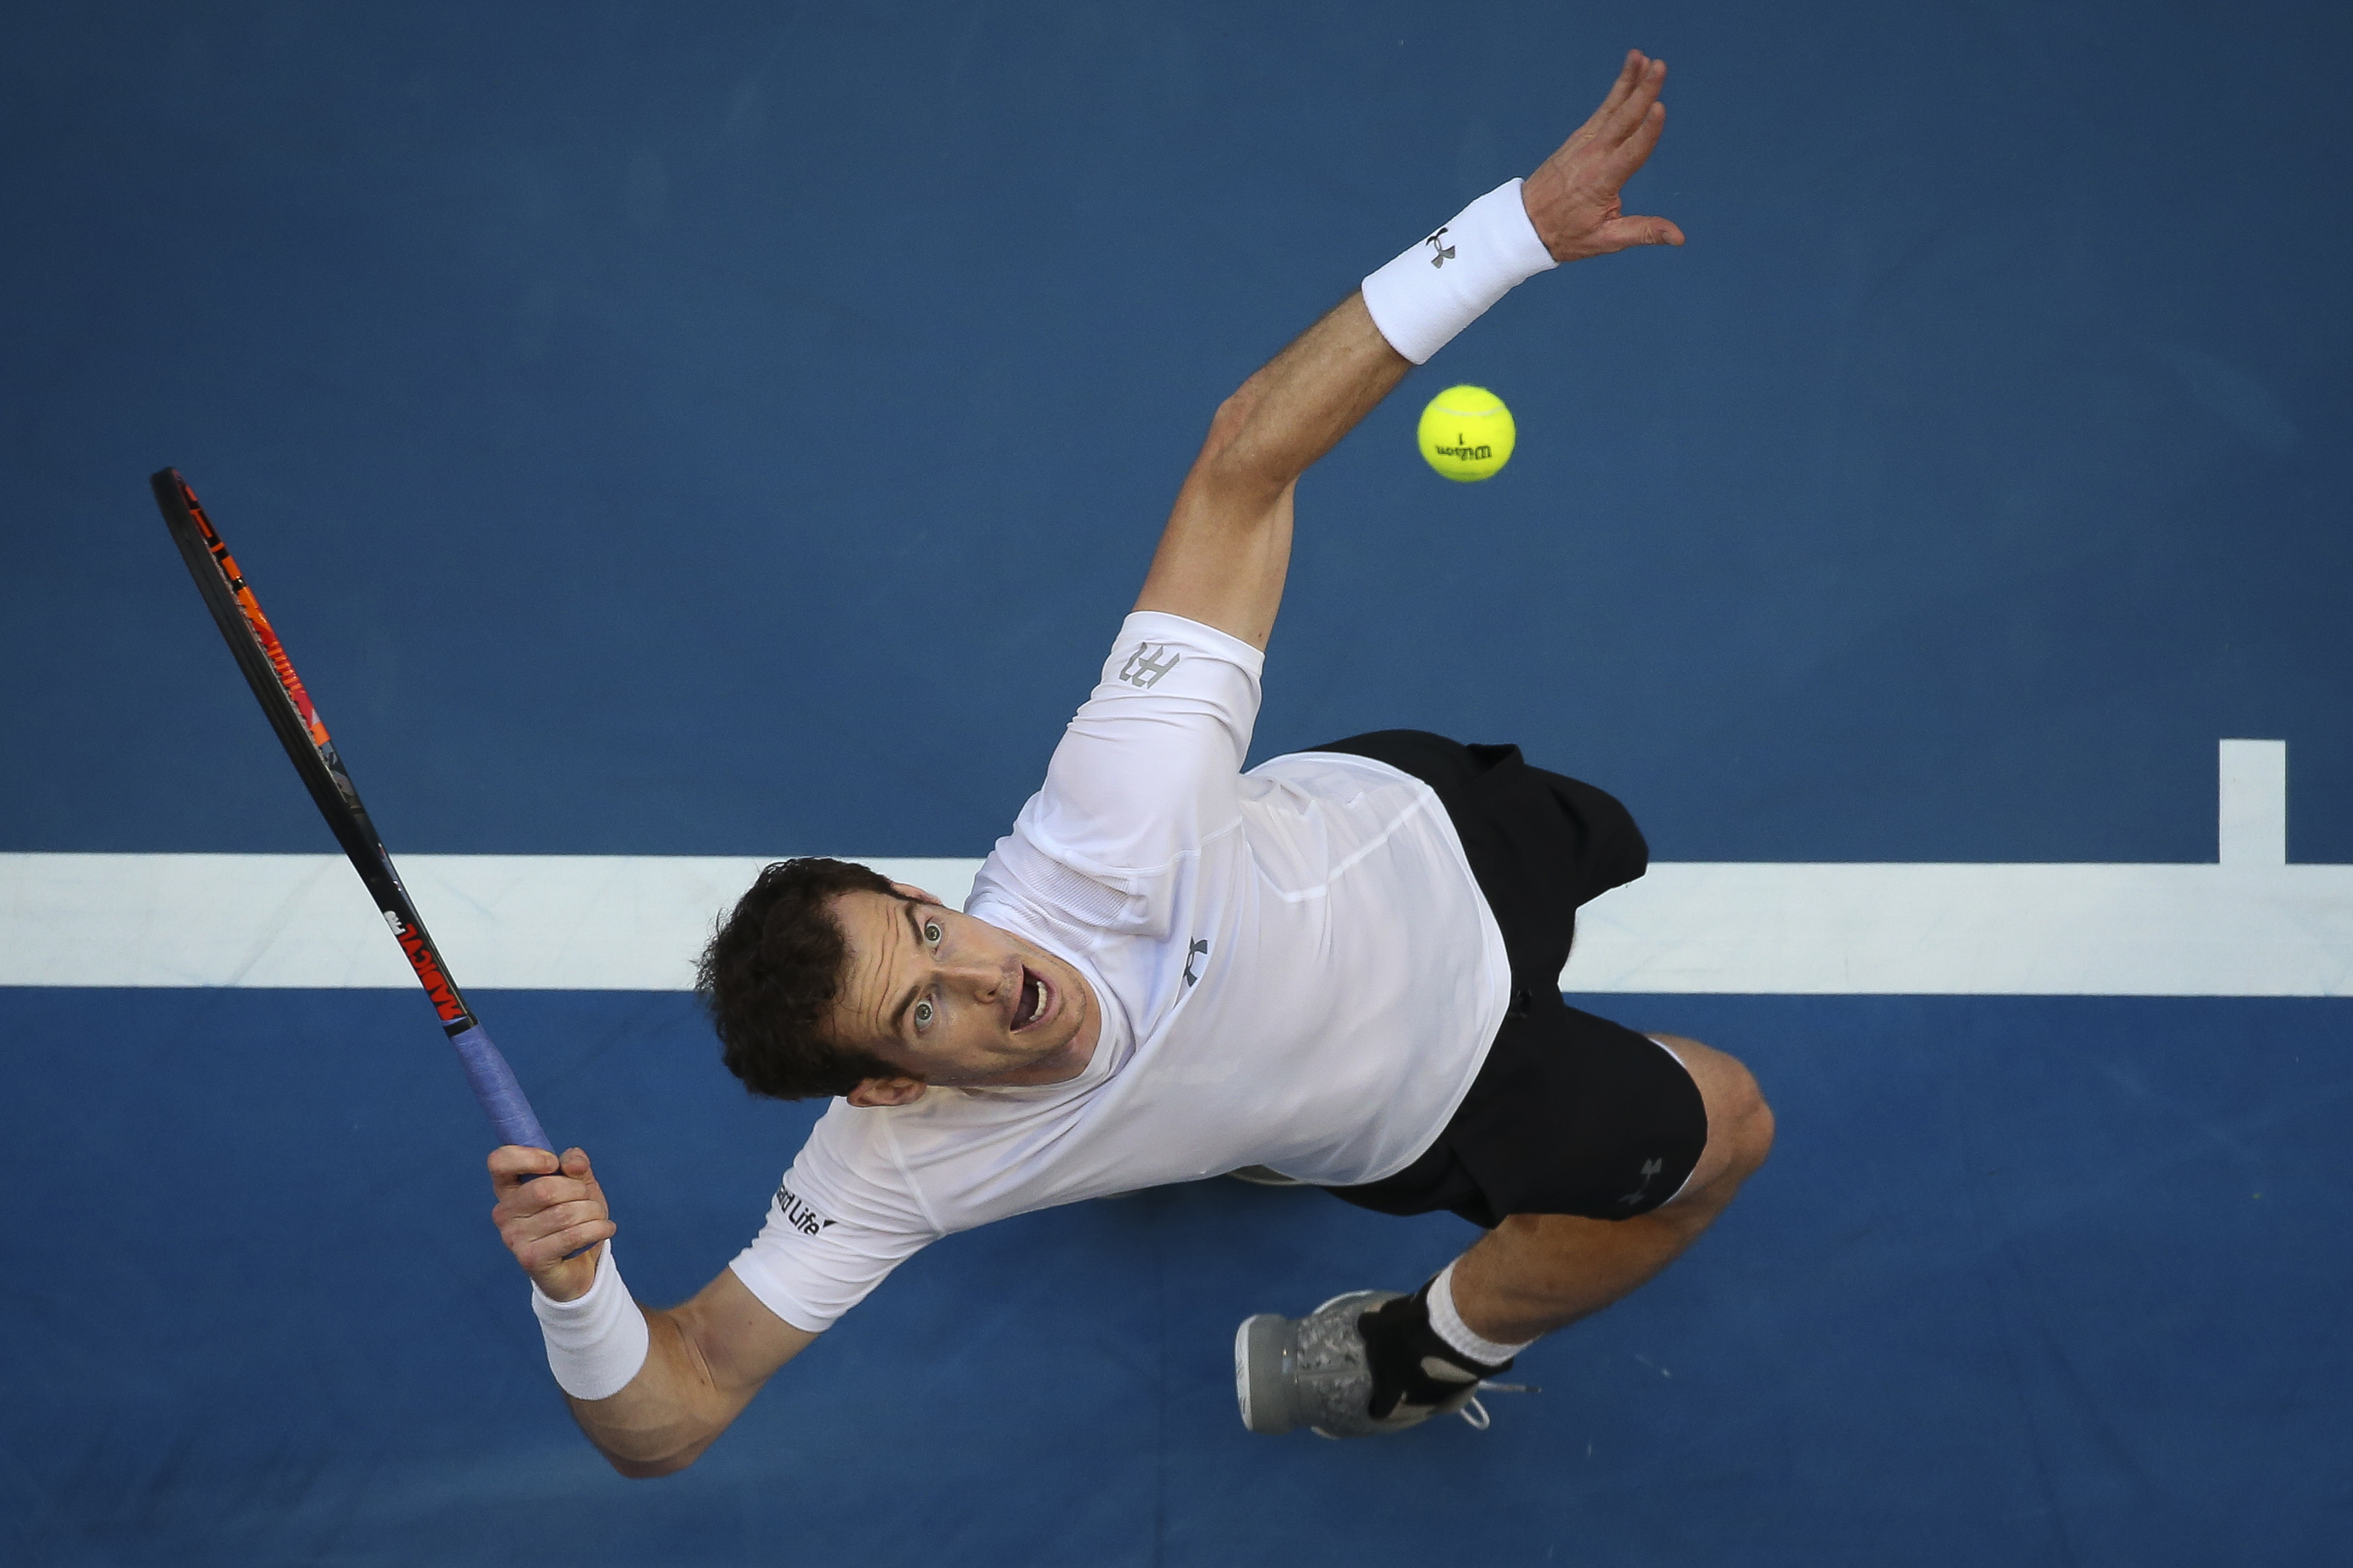 Andrew Ritchie's winning photograph of Andy Murray at the 2017 Hopman Cup. Picture: Andrew Ritchie